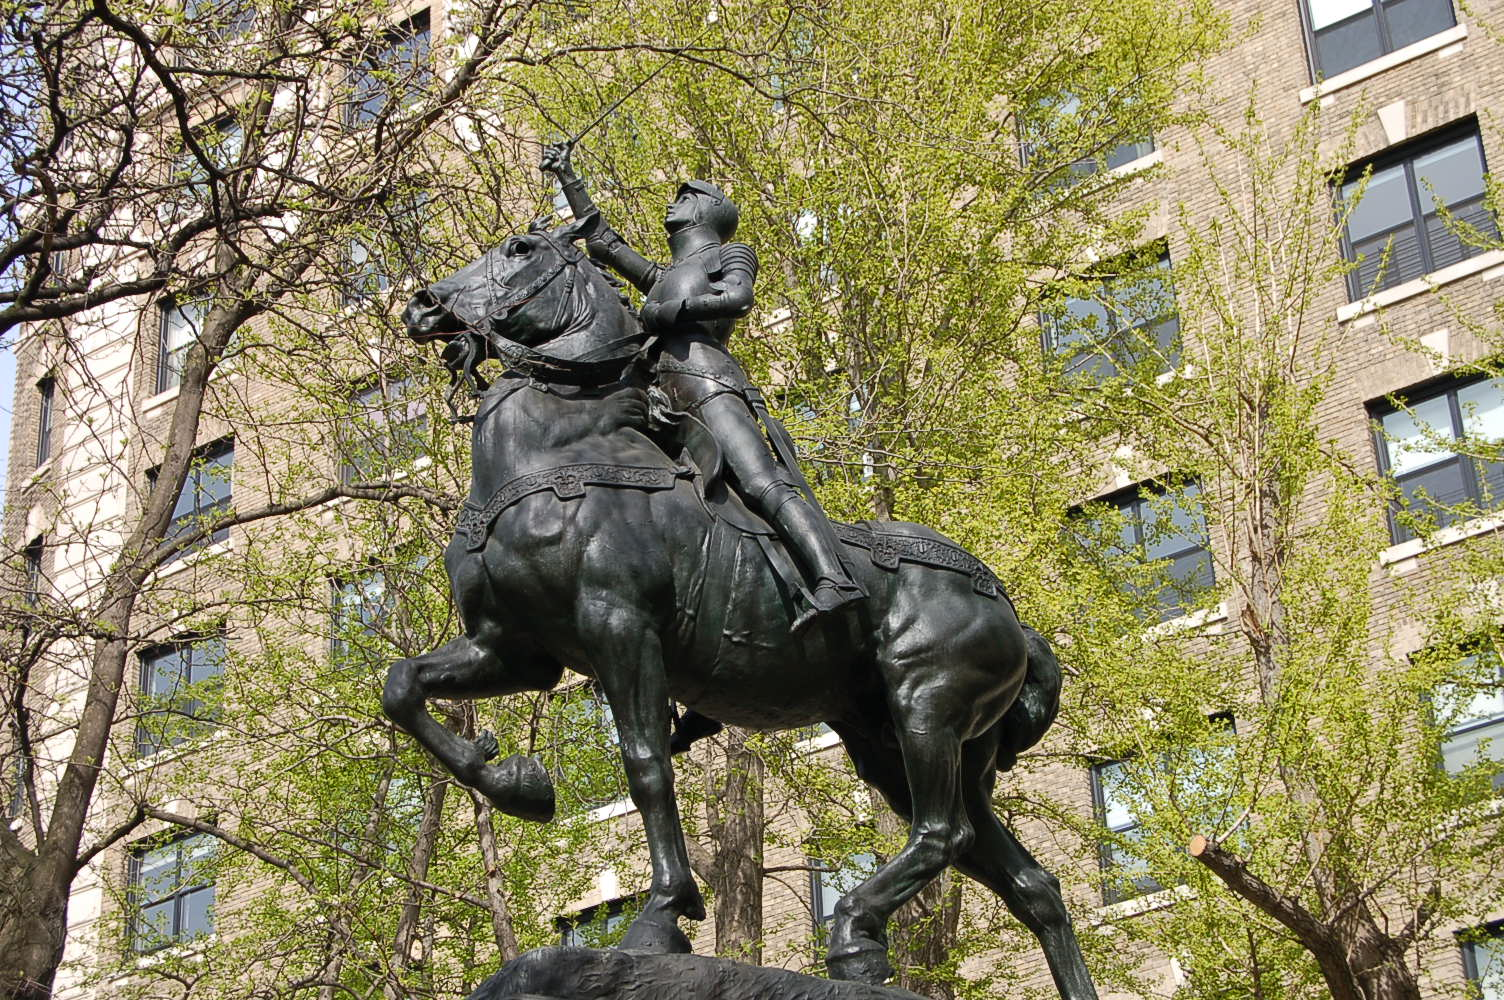 Joan of Arc sculpture in New York City.